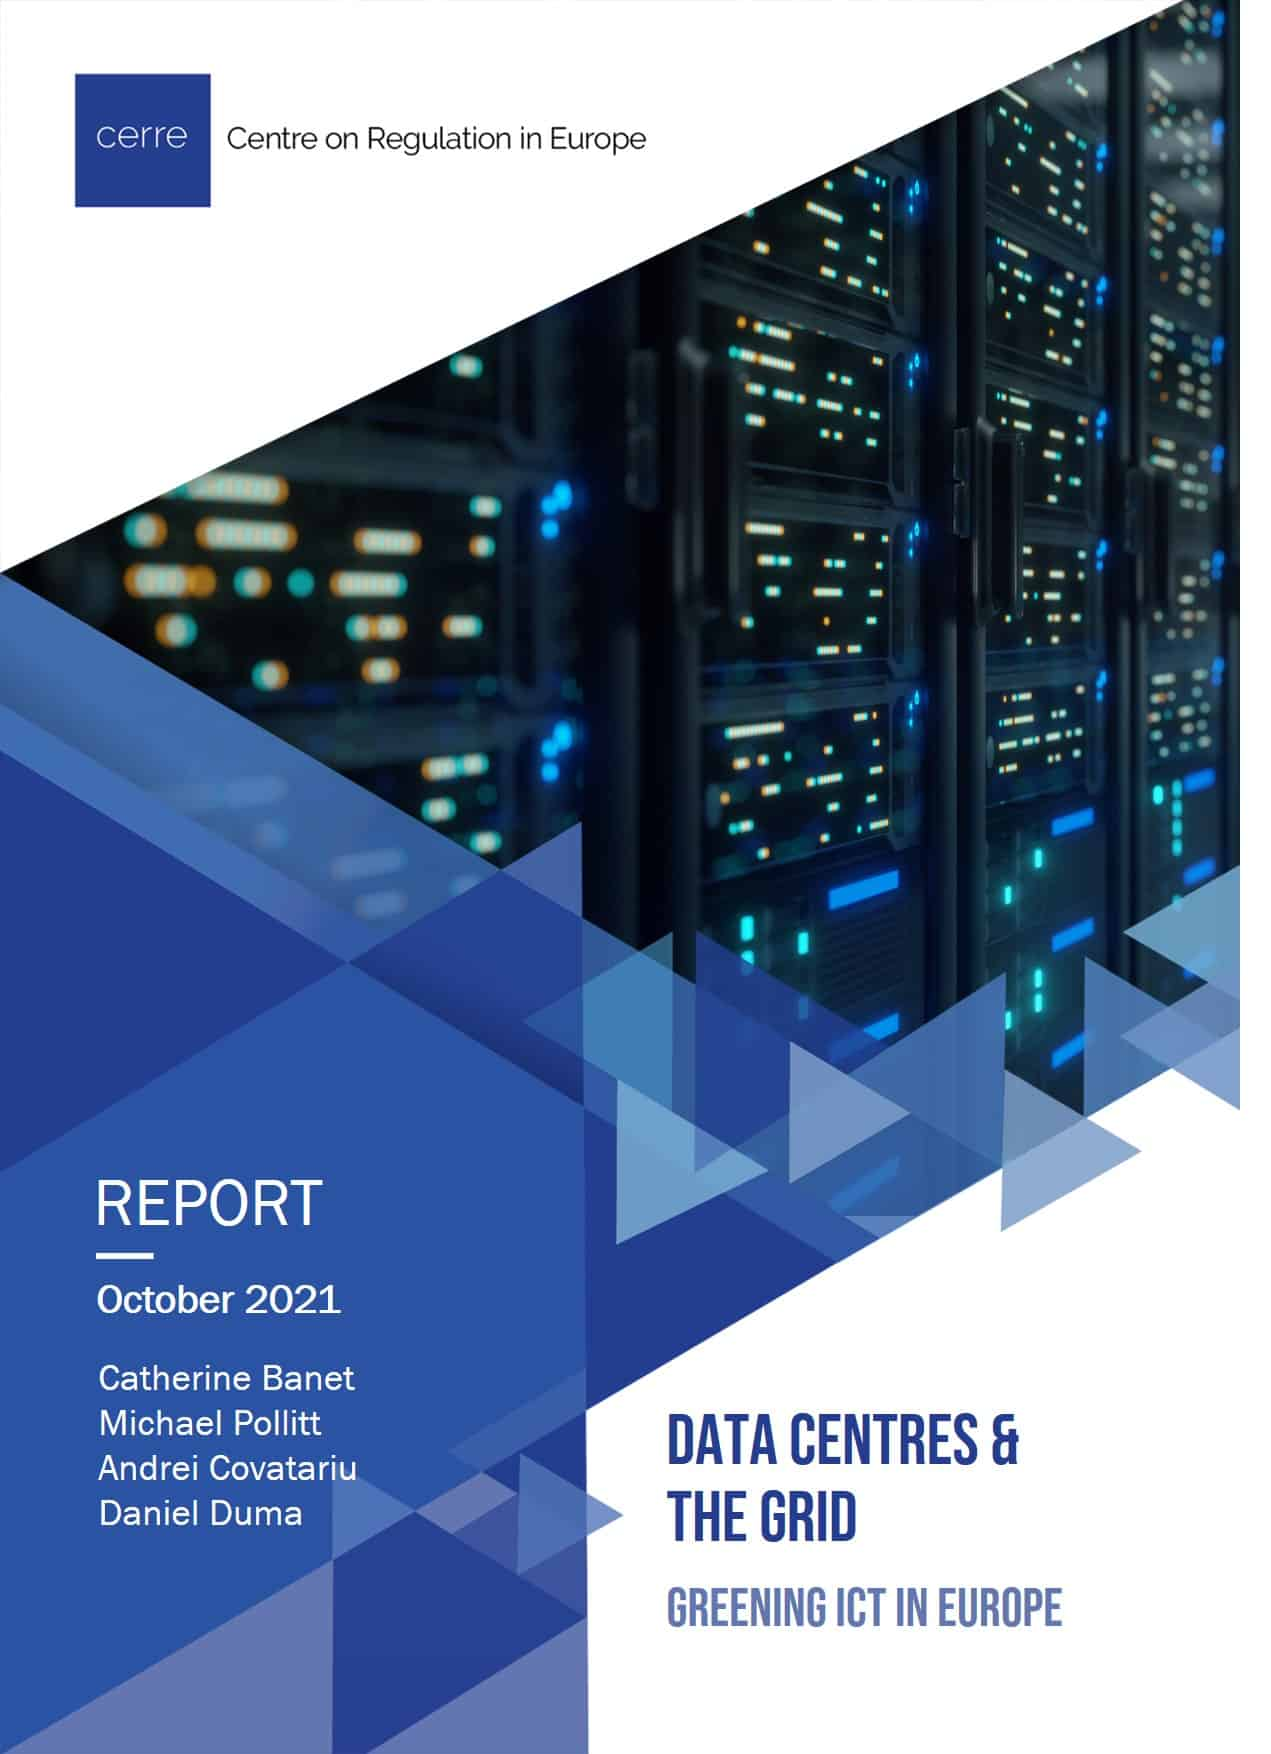 """Cover of a publication. Blue background with a photograph of a super computer in the top right corner and the title """"Data Centres and the Grid: Greening ICT in Europe"""" in the bottom right"""